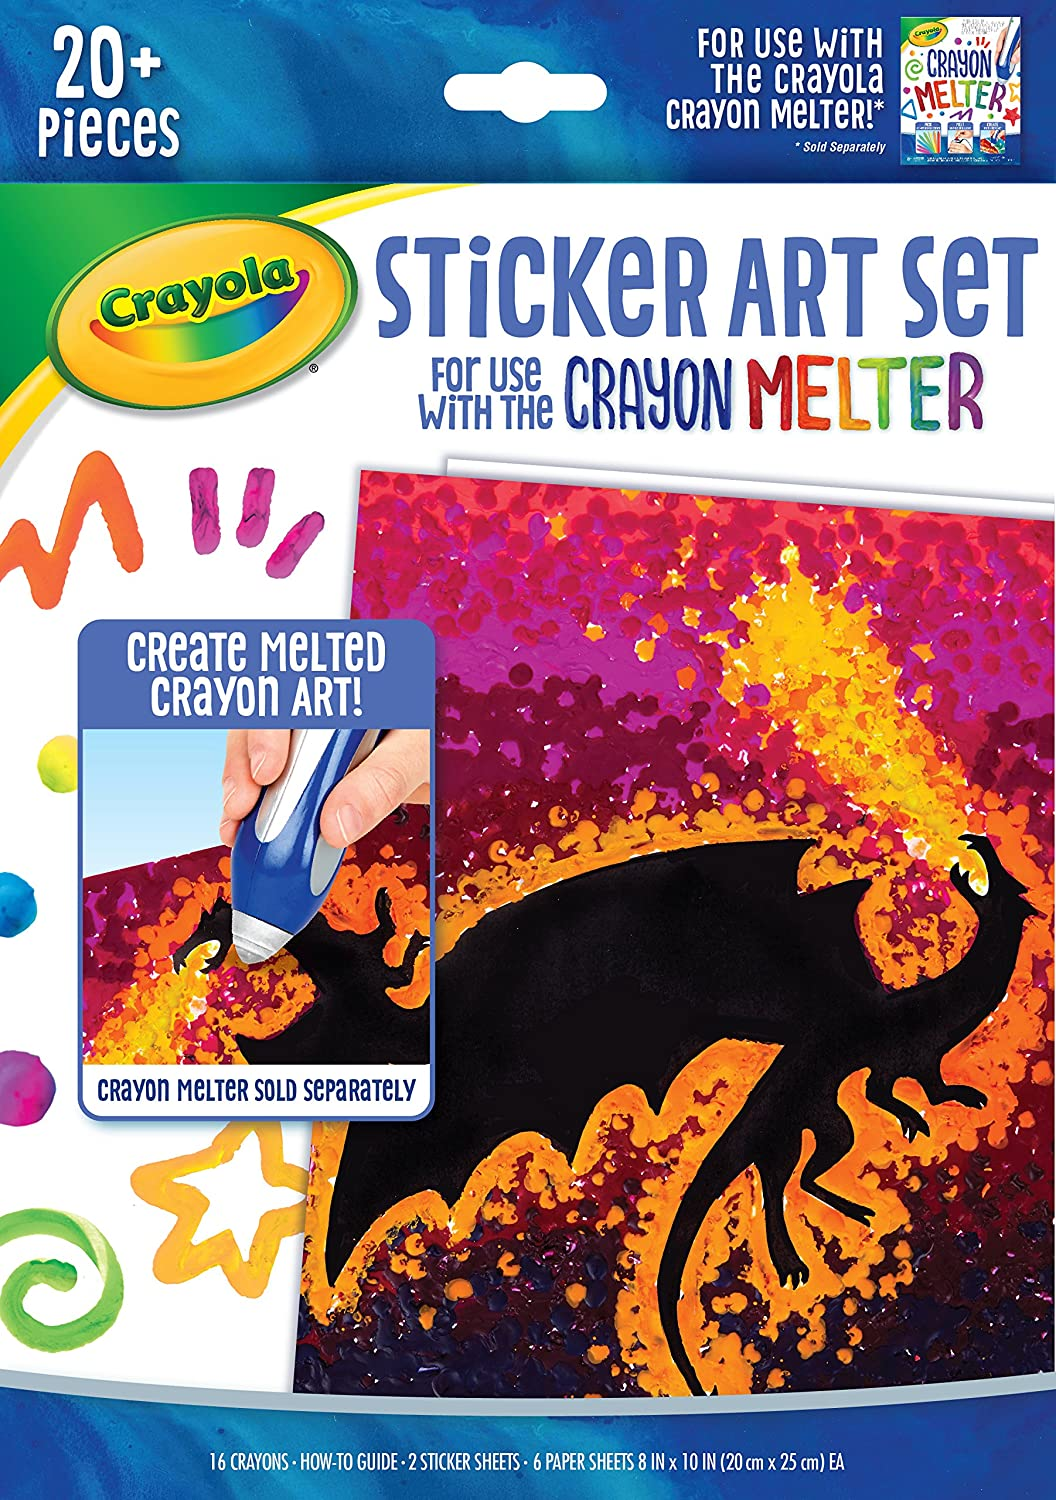 Crayola Silhouette Art Sticker Kit, Crayon Melter Expansion, Gift for Kids, 8, 9, 10, 11